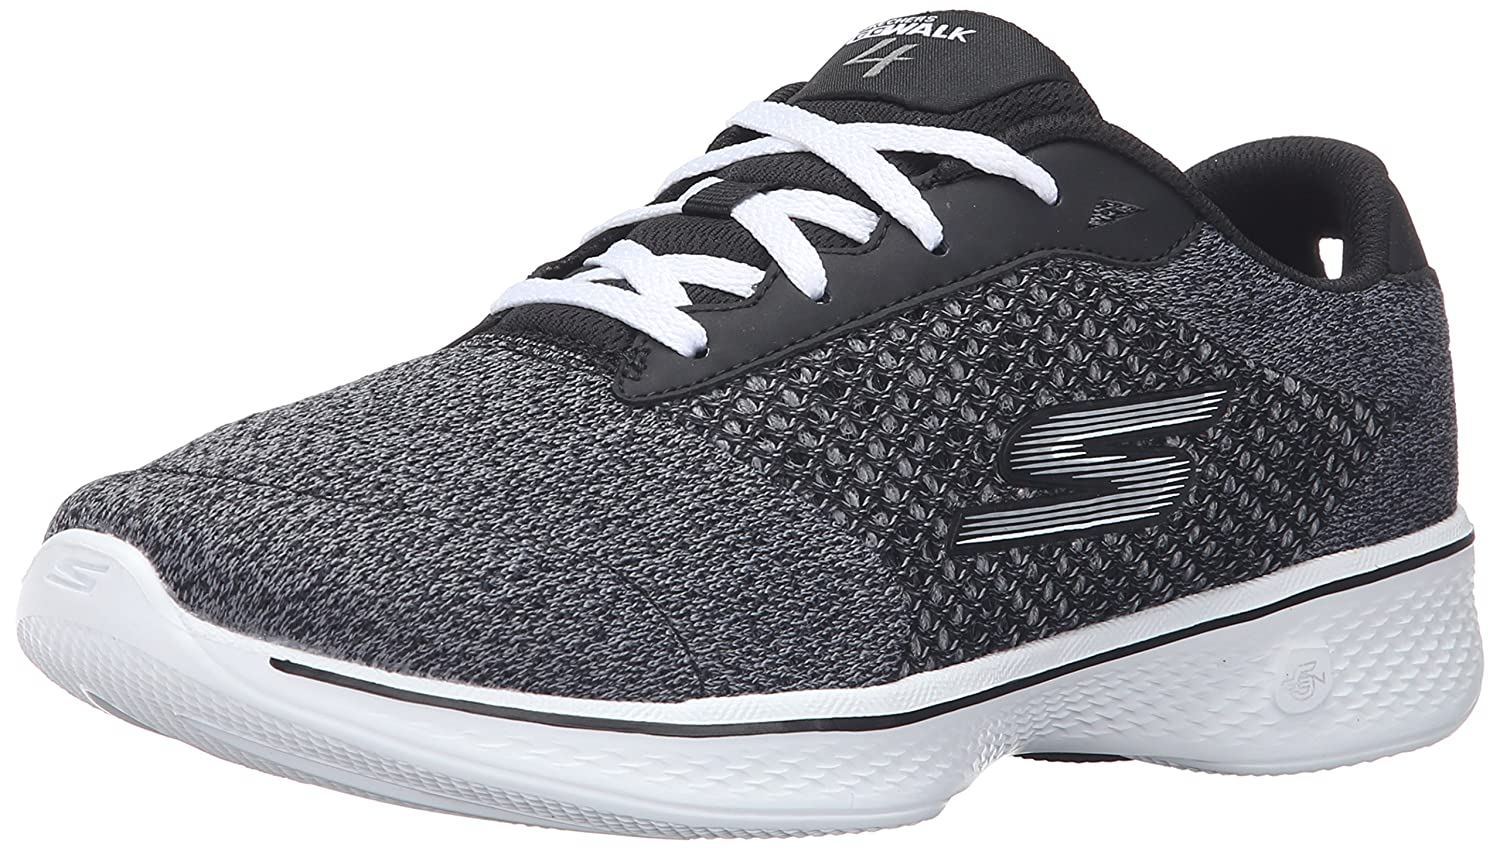 Skechers Performance Women's Go Walk 4 Exceed Lace-up Sneaker B01AH07T5Q 10 B(M) US|Black/White